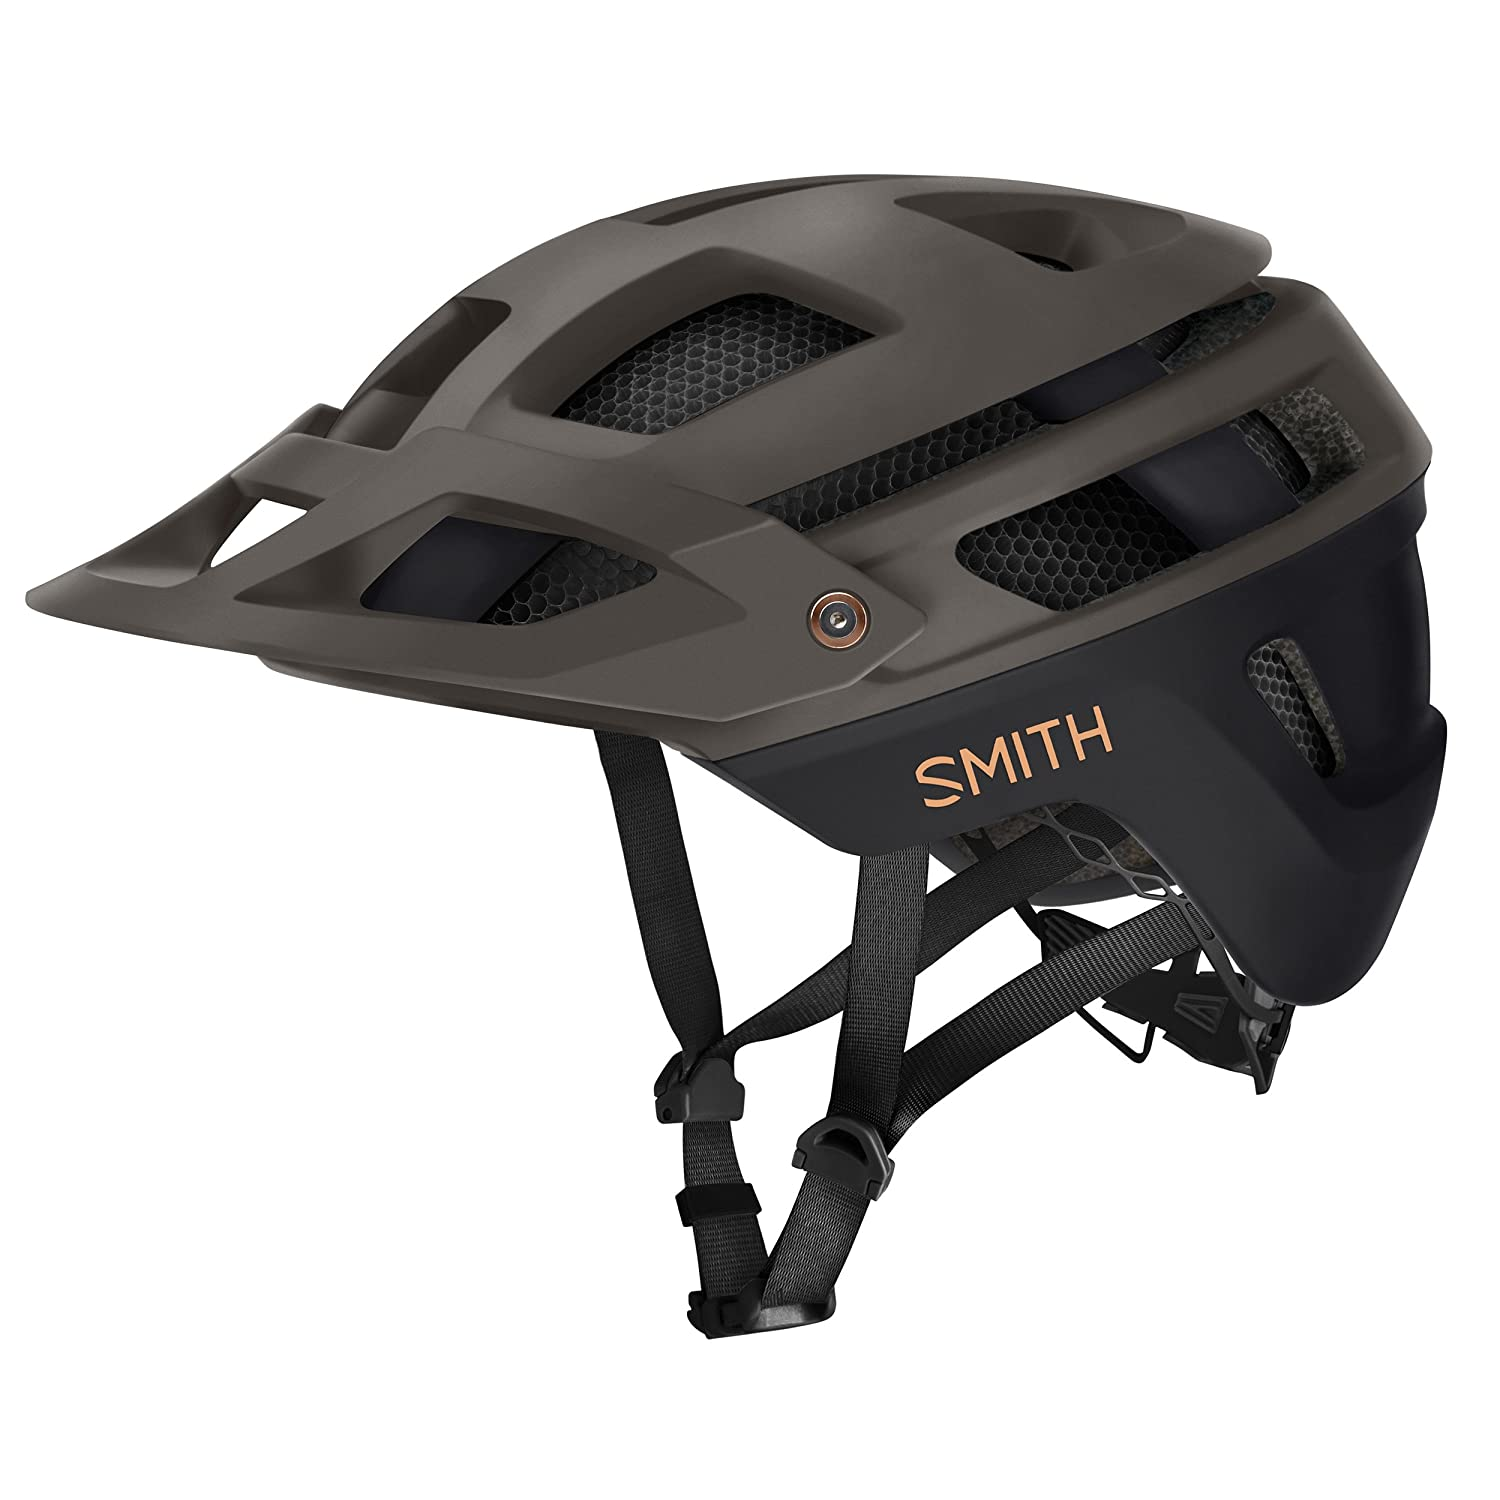 Smith Forefromt II Forefront MIPS